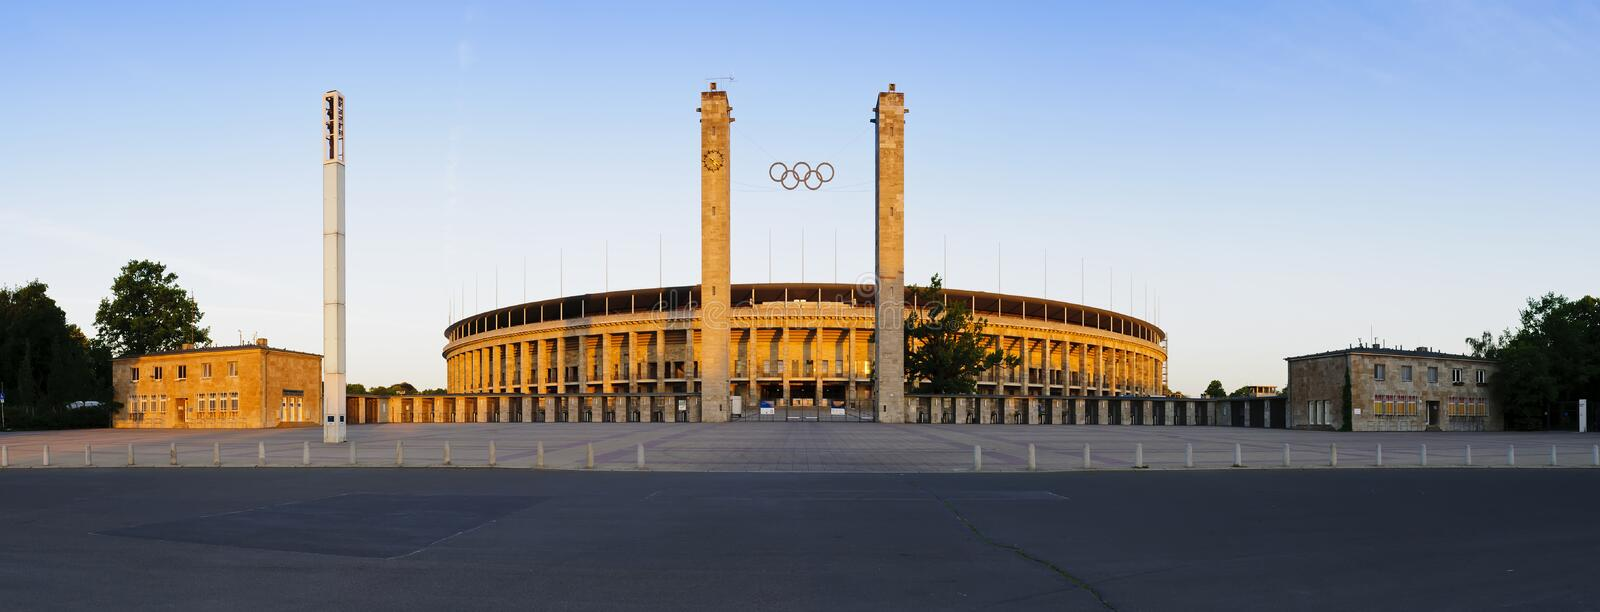 Panorama olympic stadium berlin royalty free stock image